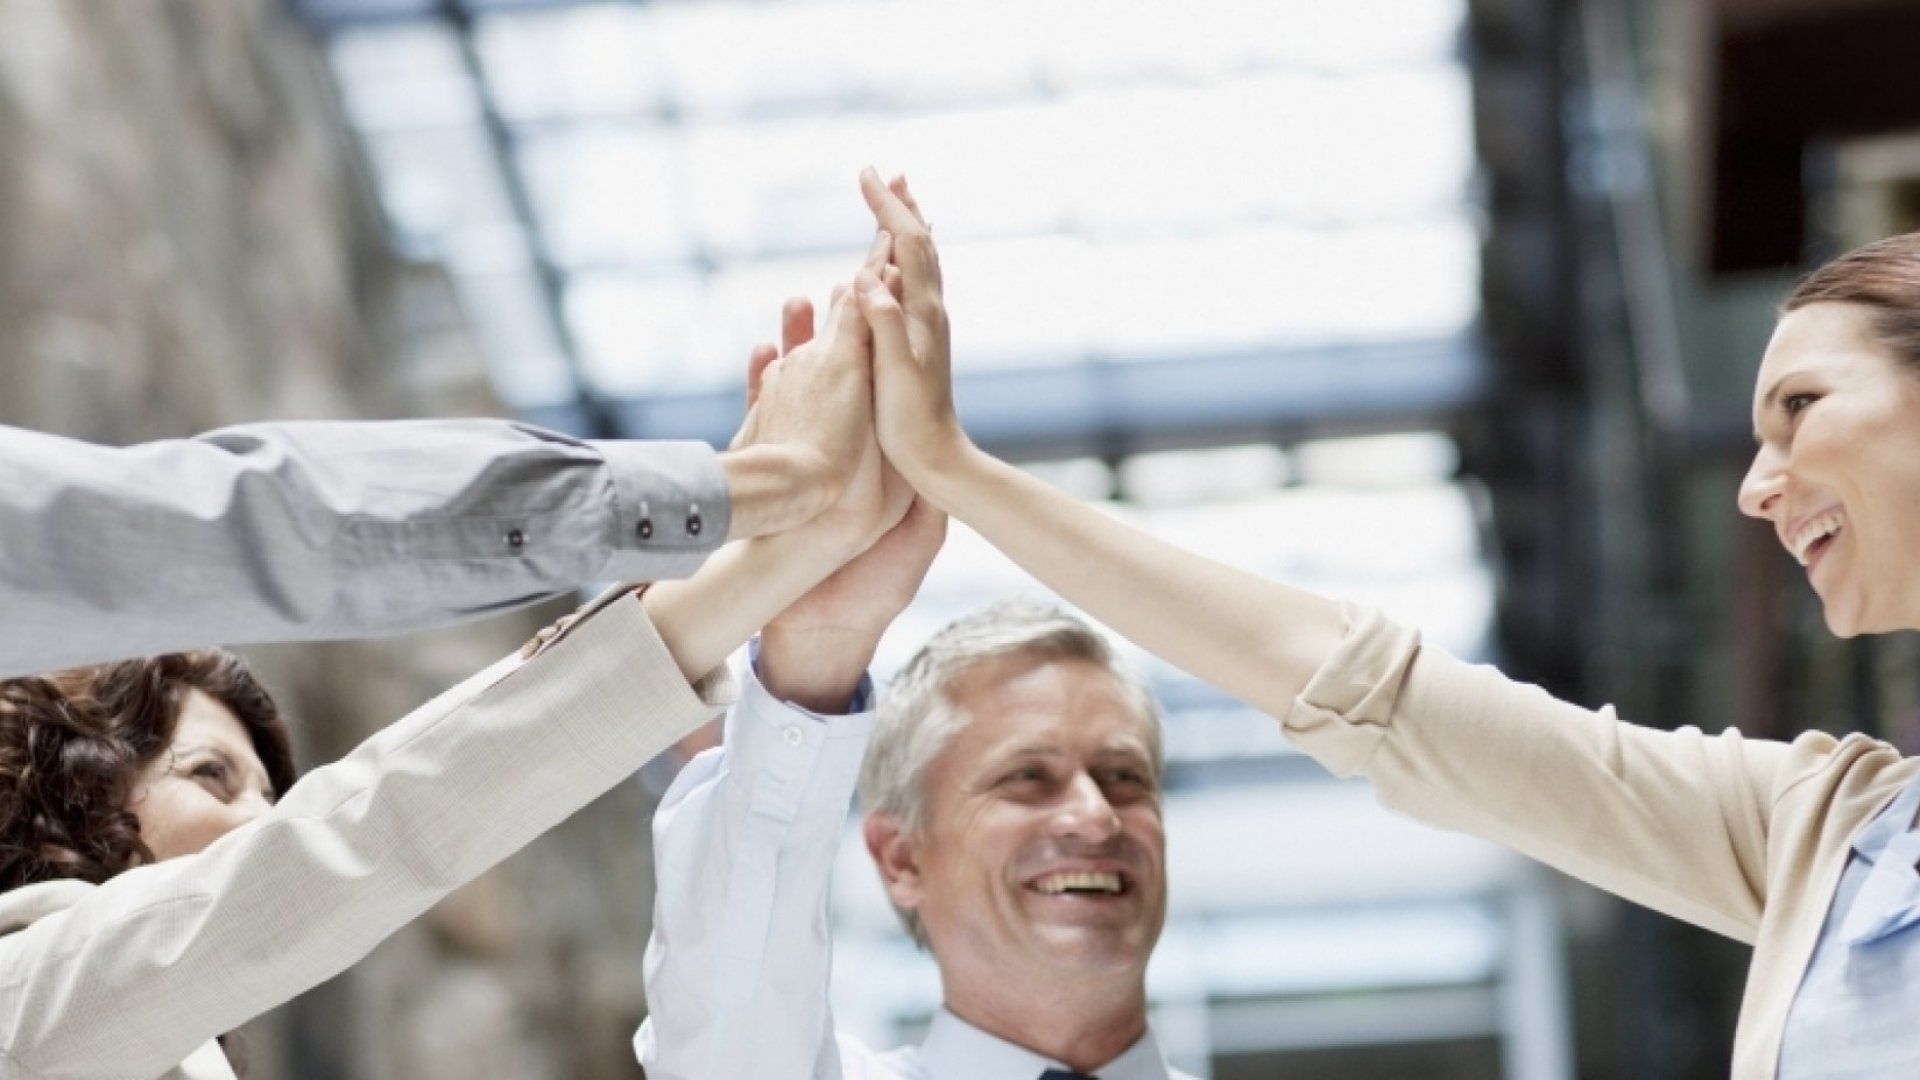 9 Changes You Can Make Right Away to Motivate and Energize Your Team